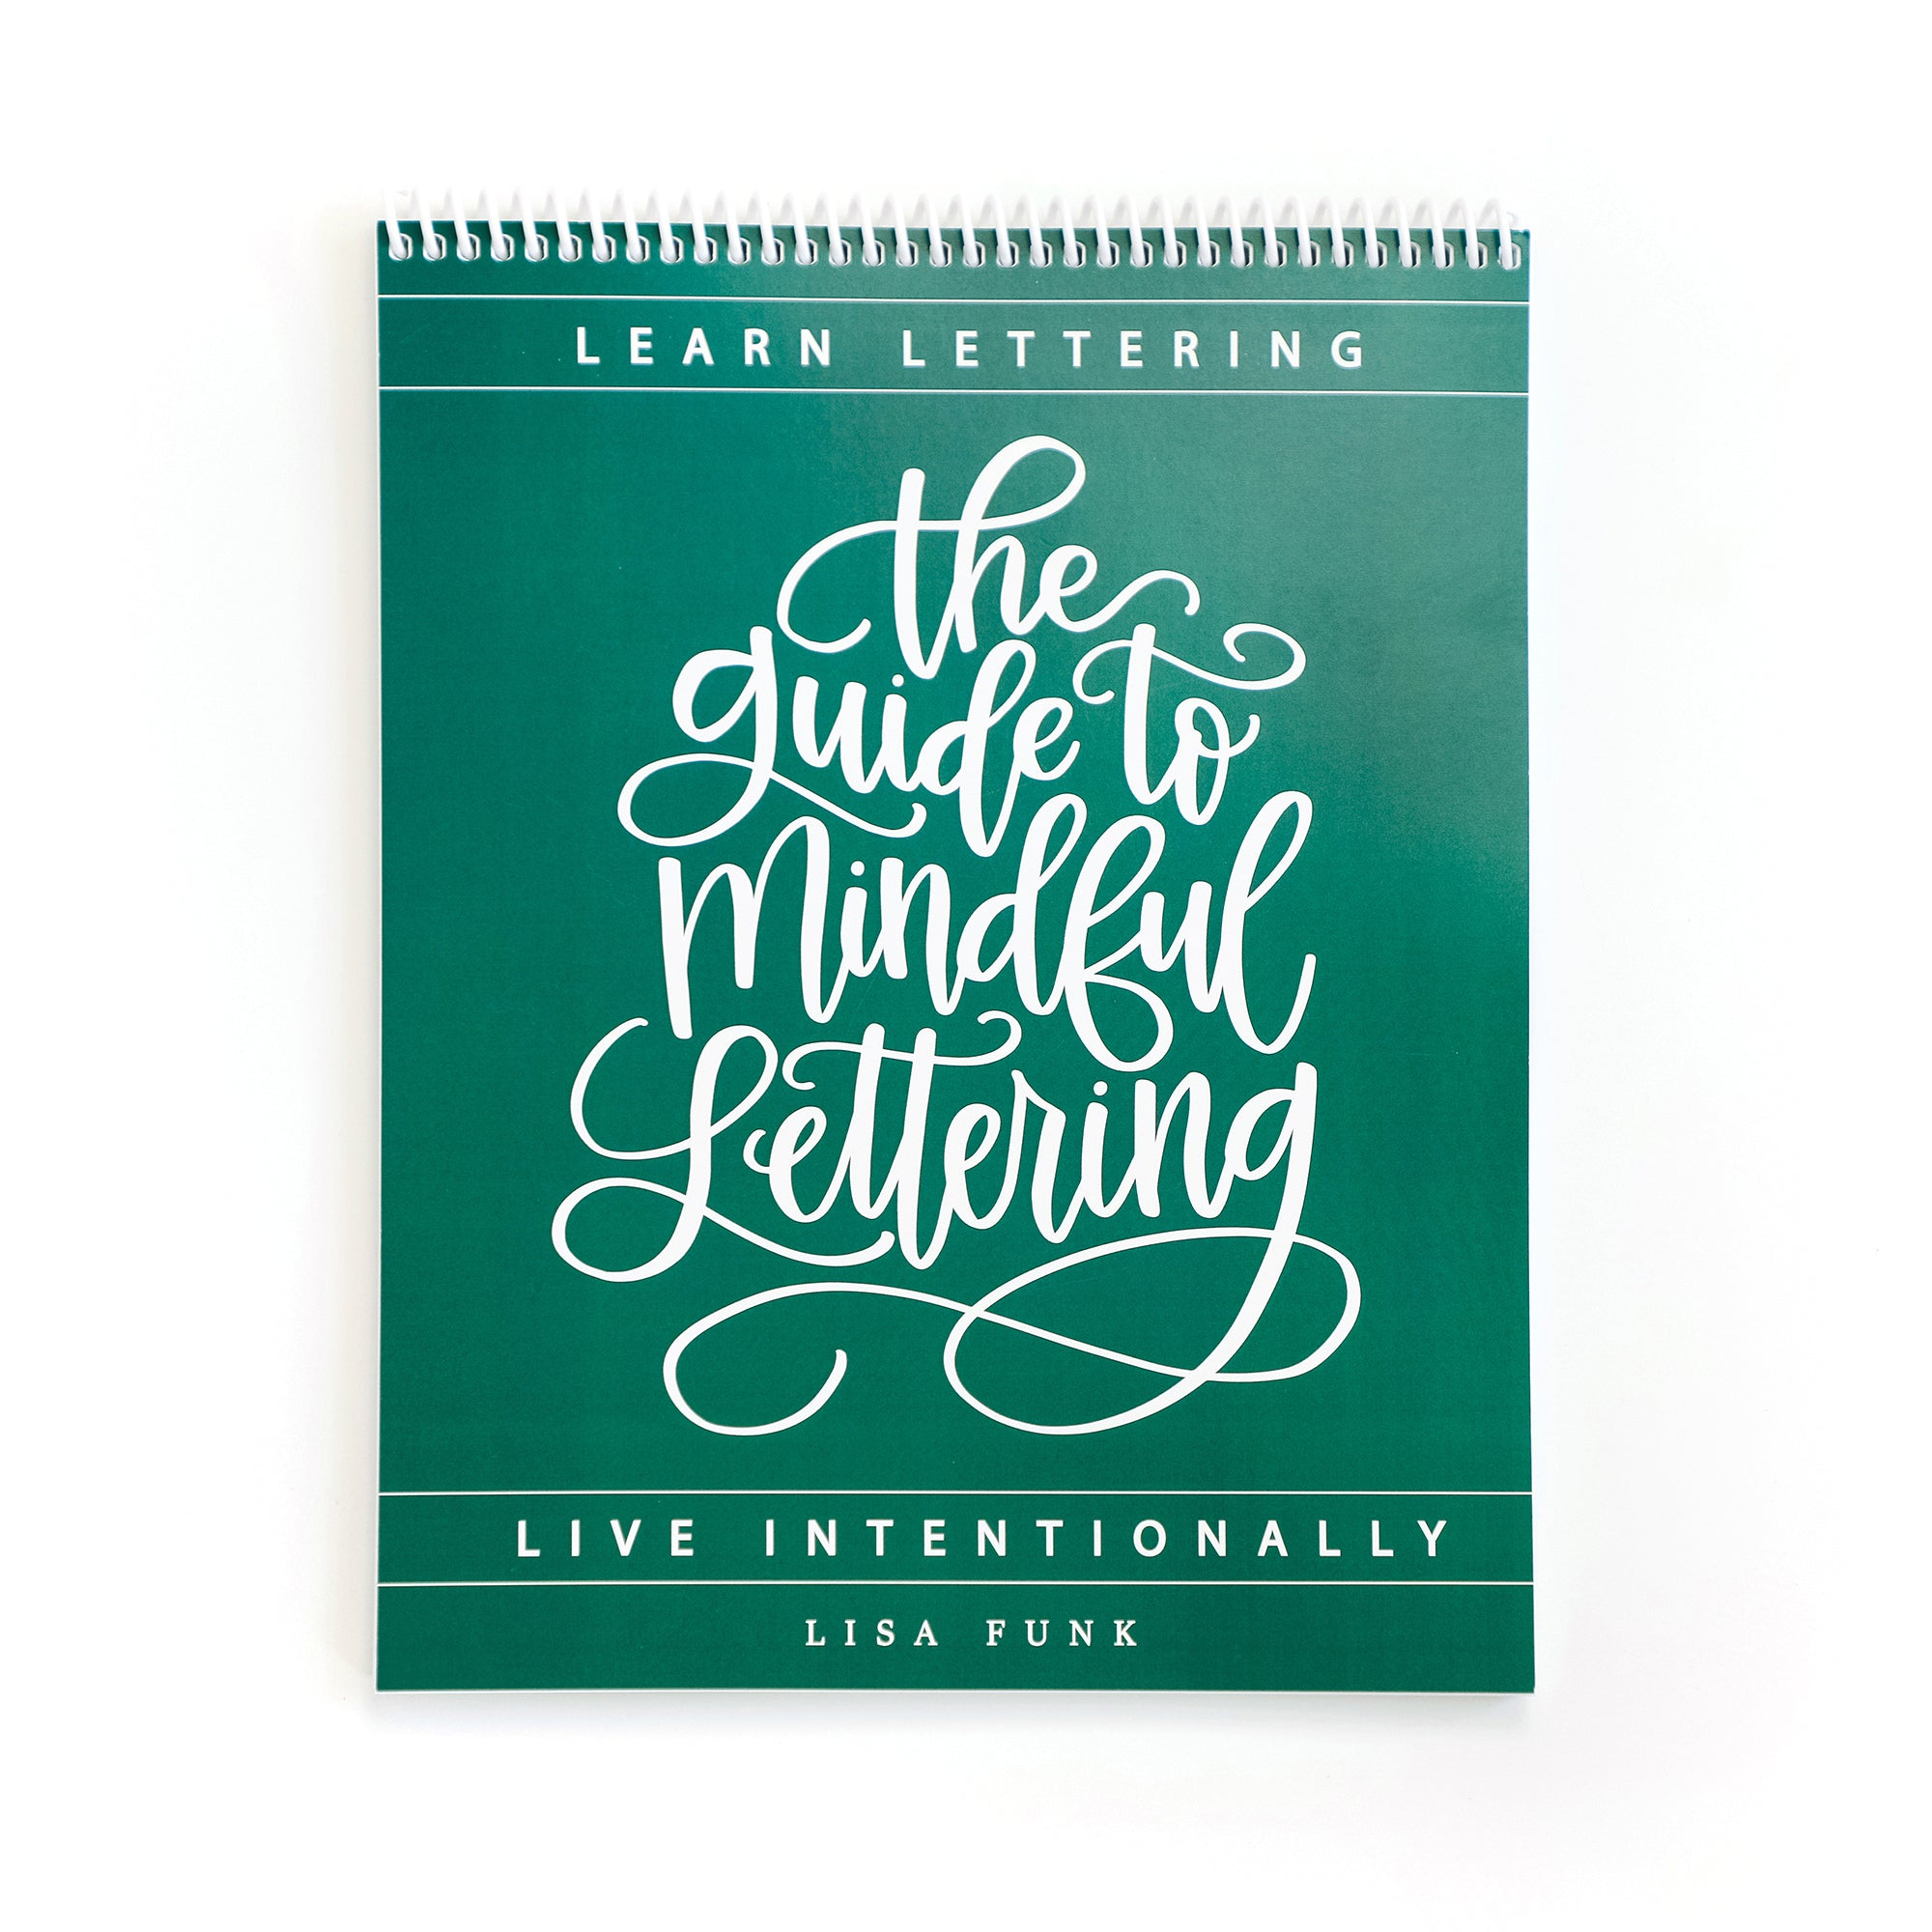 The Guide to Mindful Lettering - Top Spiral Binding